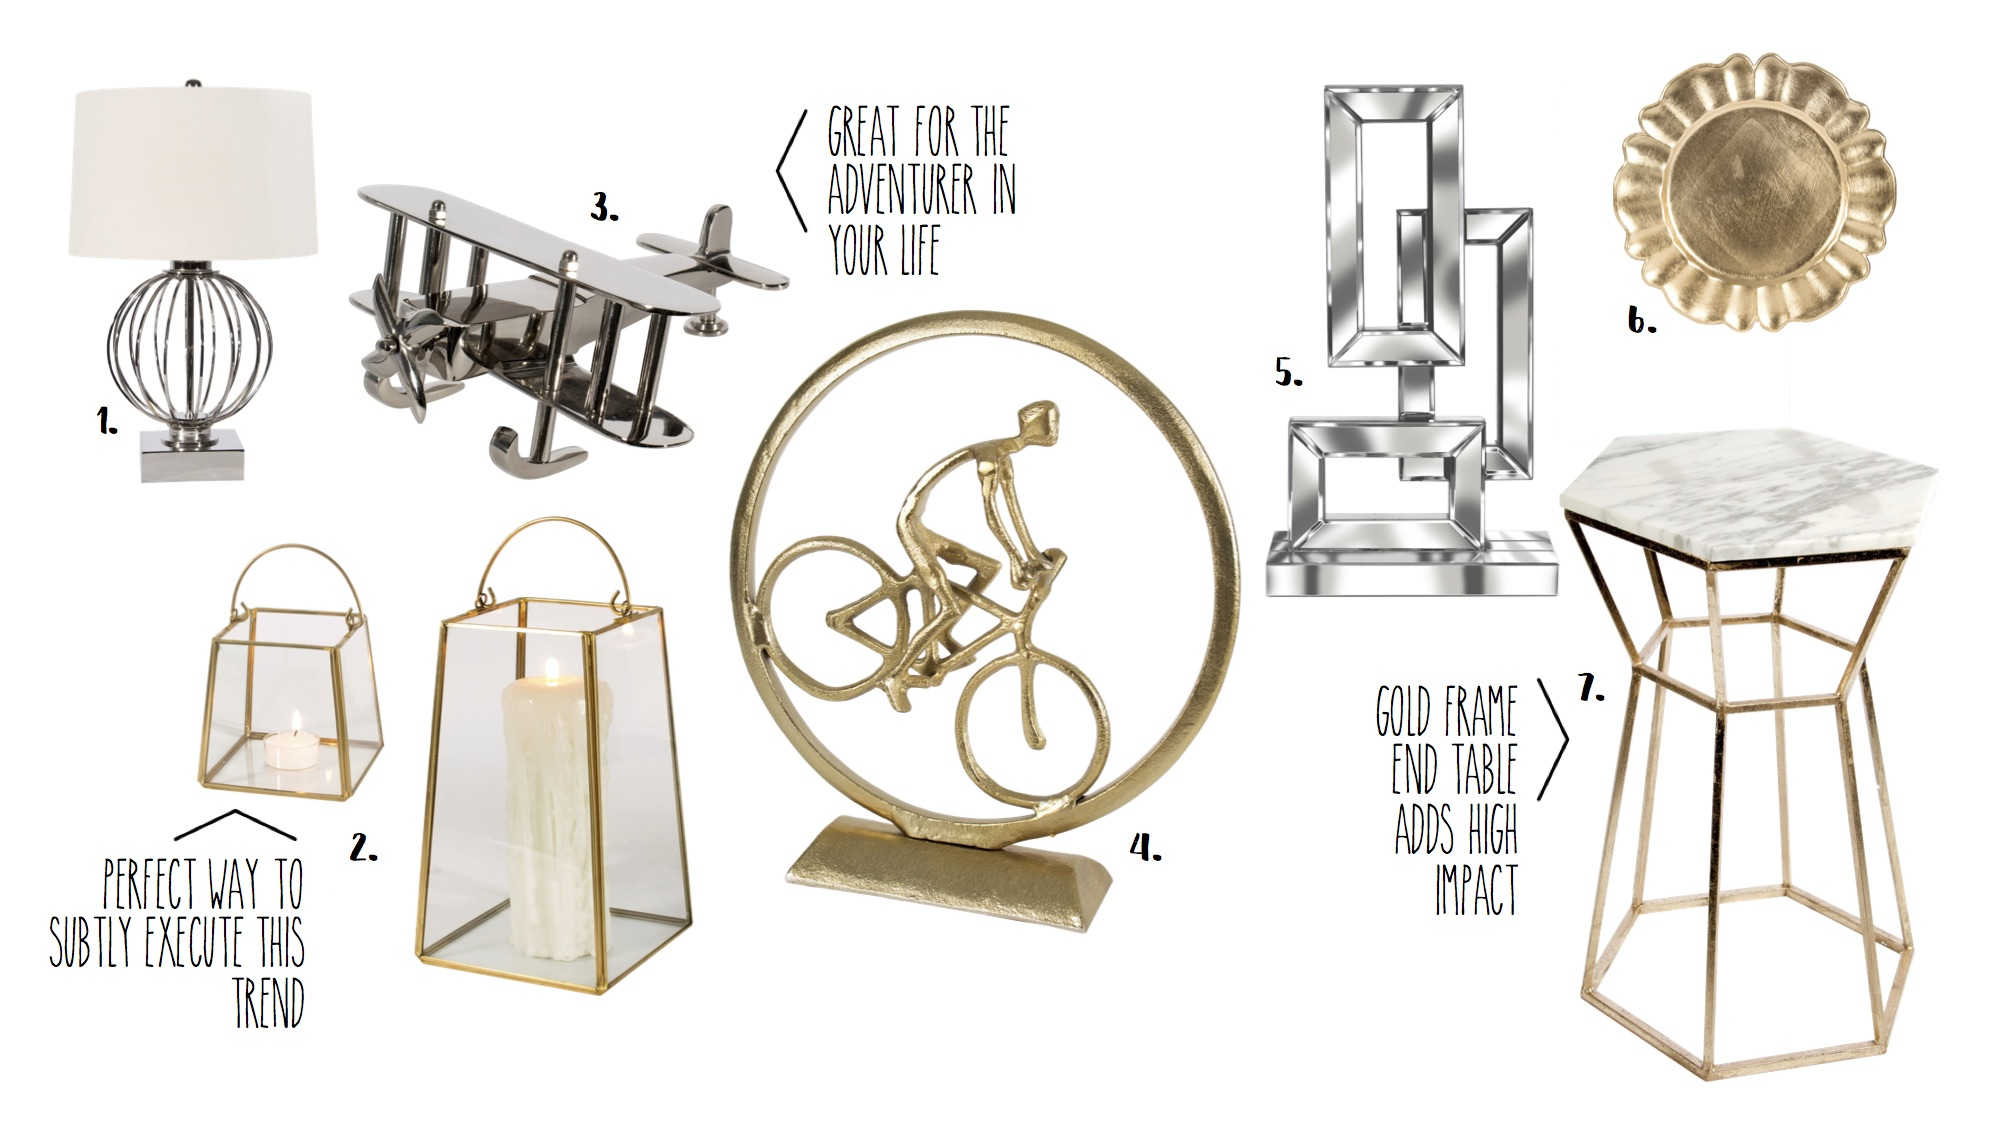 1.  Silver Lamp - $269.95  2.  Shaker Candle Holders - (s) $29.95 (l) $44.96  3.  Silver Plane Model - $92.95  4.  Biker Statue - $149.95  5.  Mirrored Statue - $198.95  6.  Gold Charger - $6.95  7.  Gold and Marble Table - $394.95